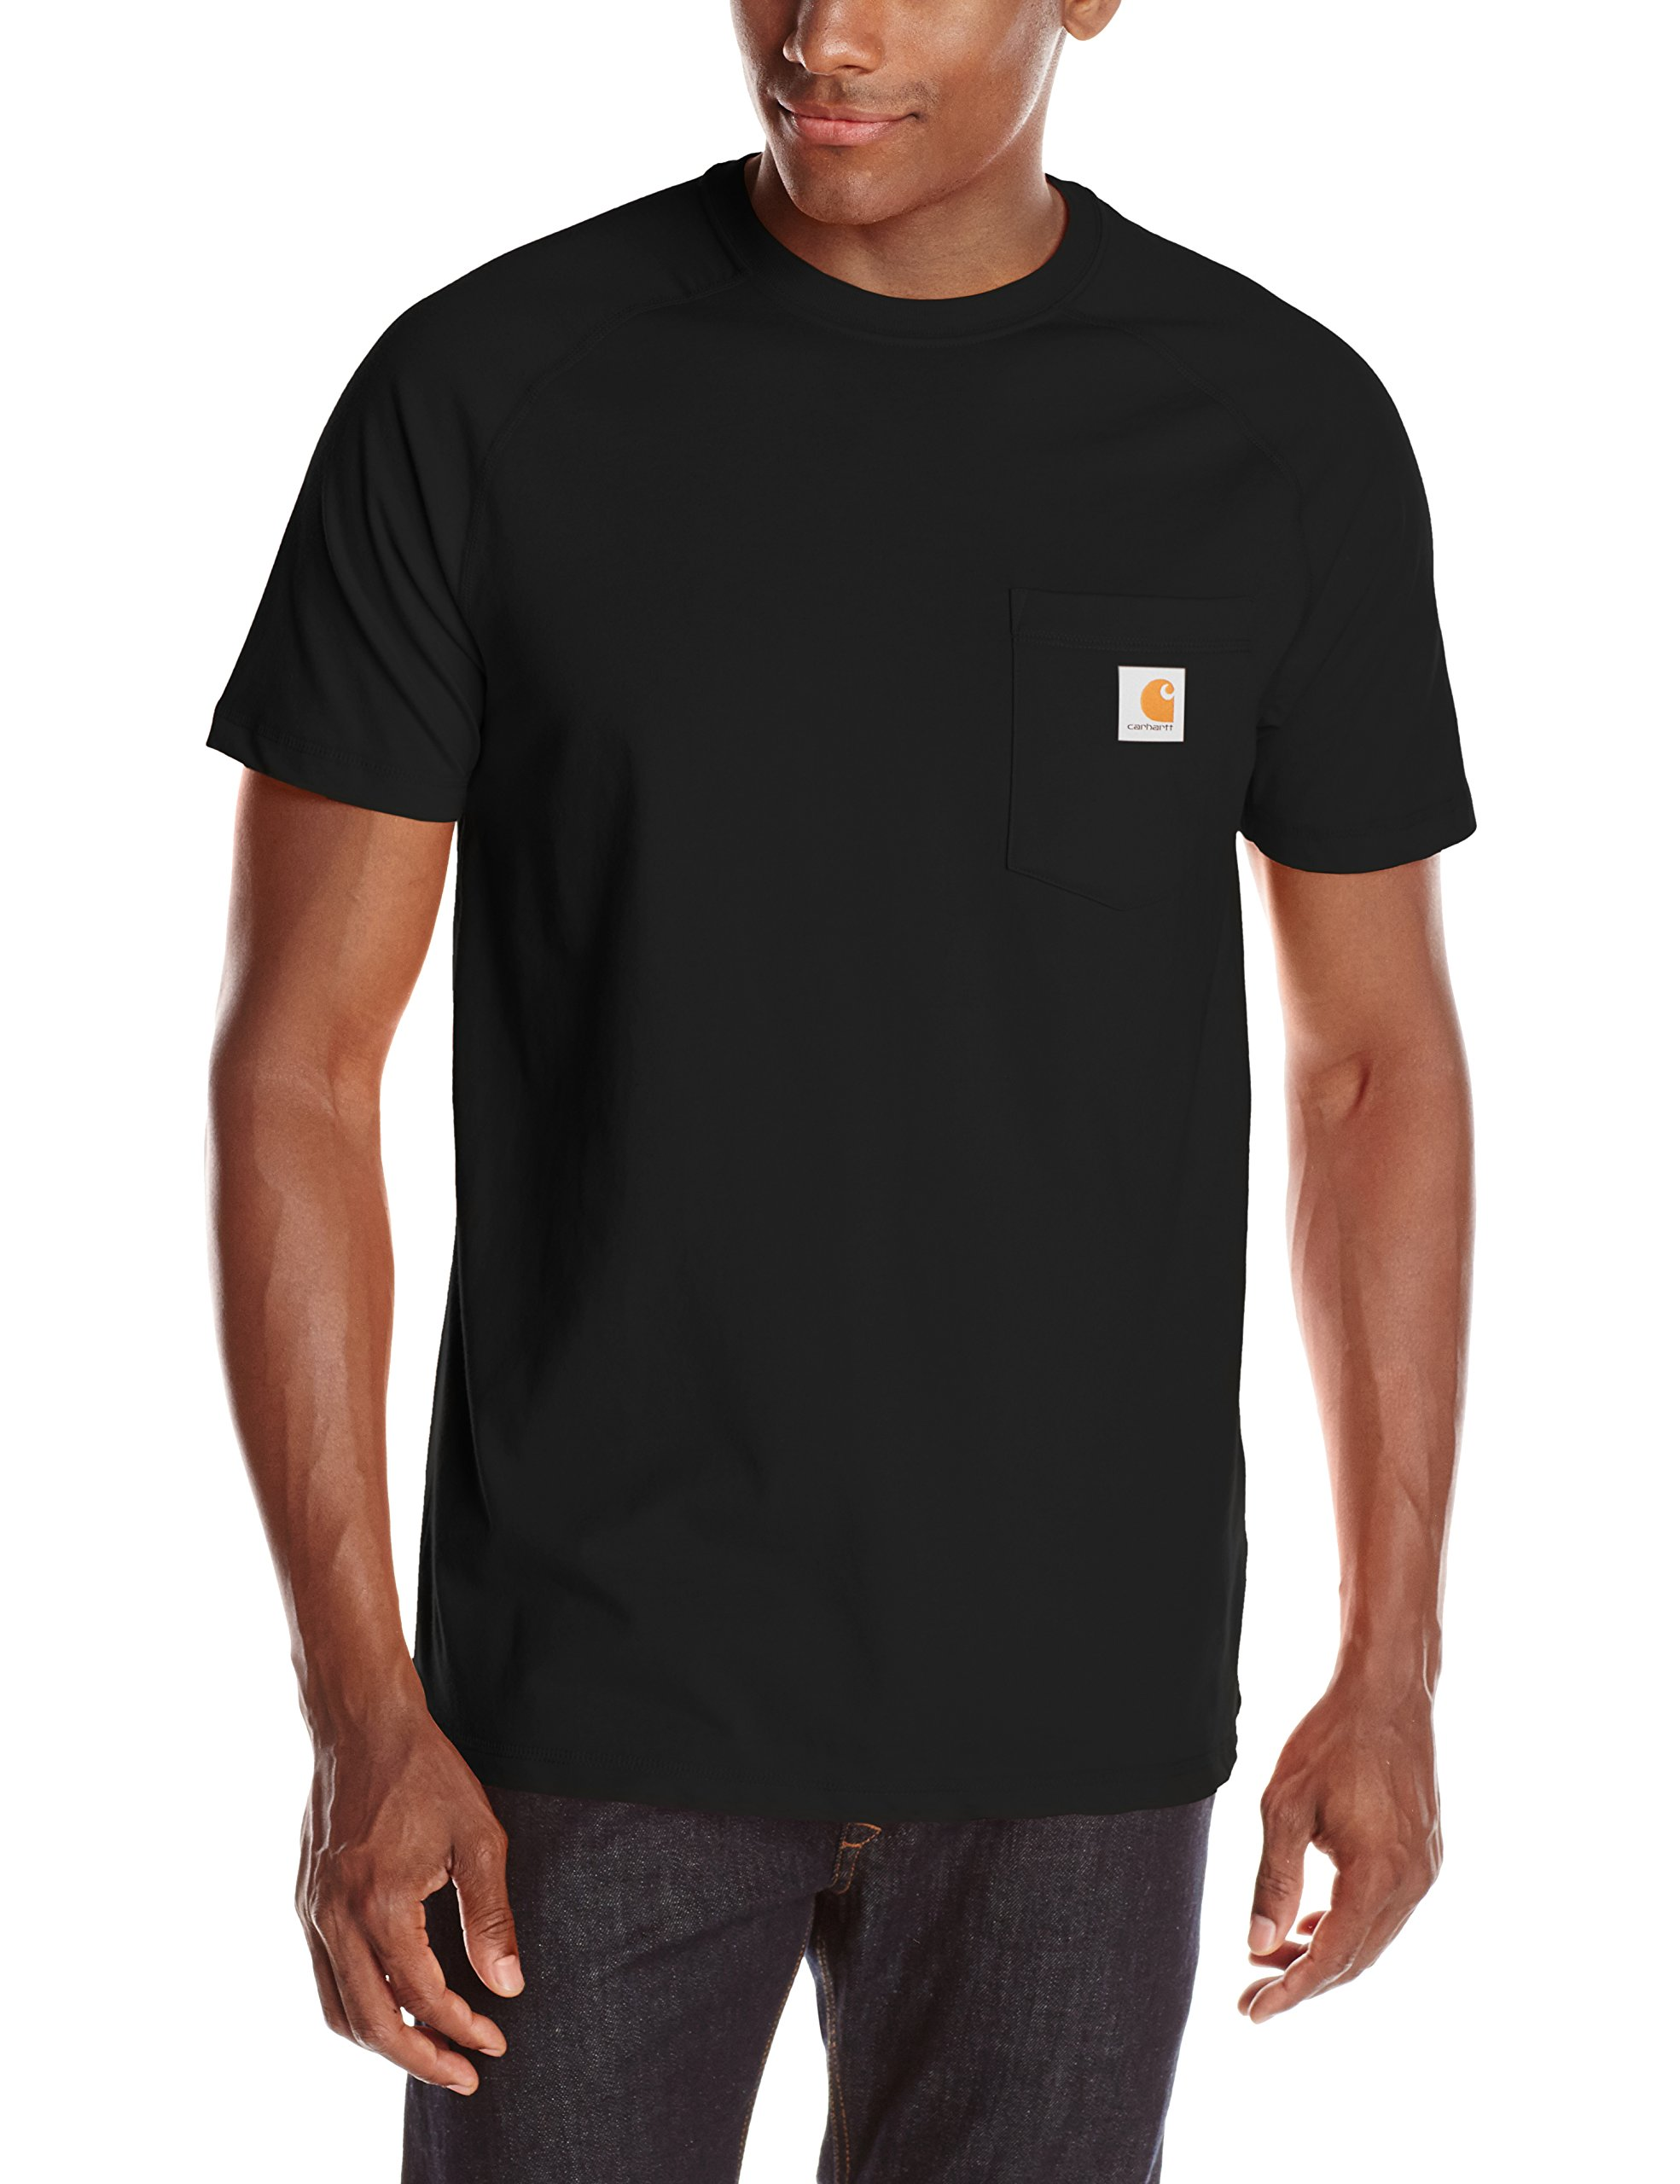 Carhartt Men's Force Cotton Delmont Short Sleeve T-Shirt (Regular and Big & Tall Sizes), Black, Large by Carhartt